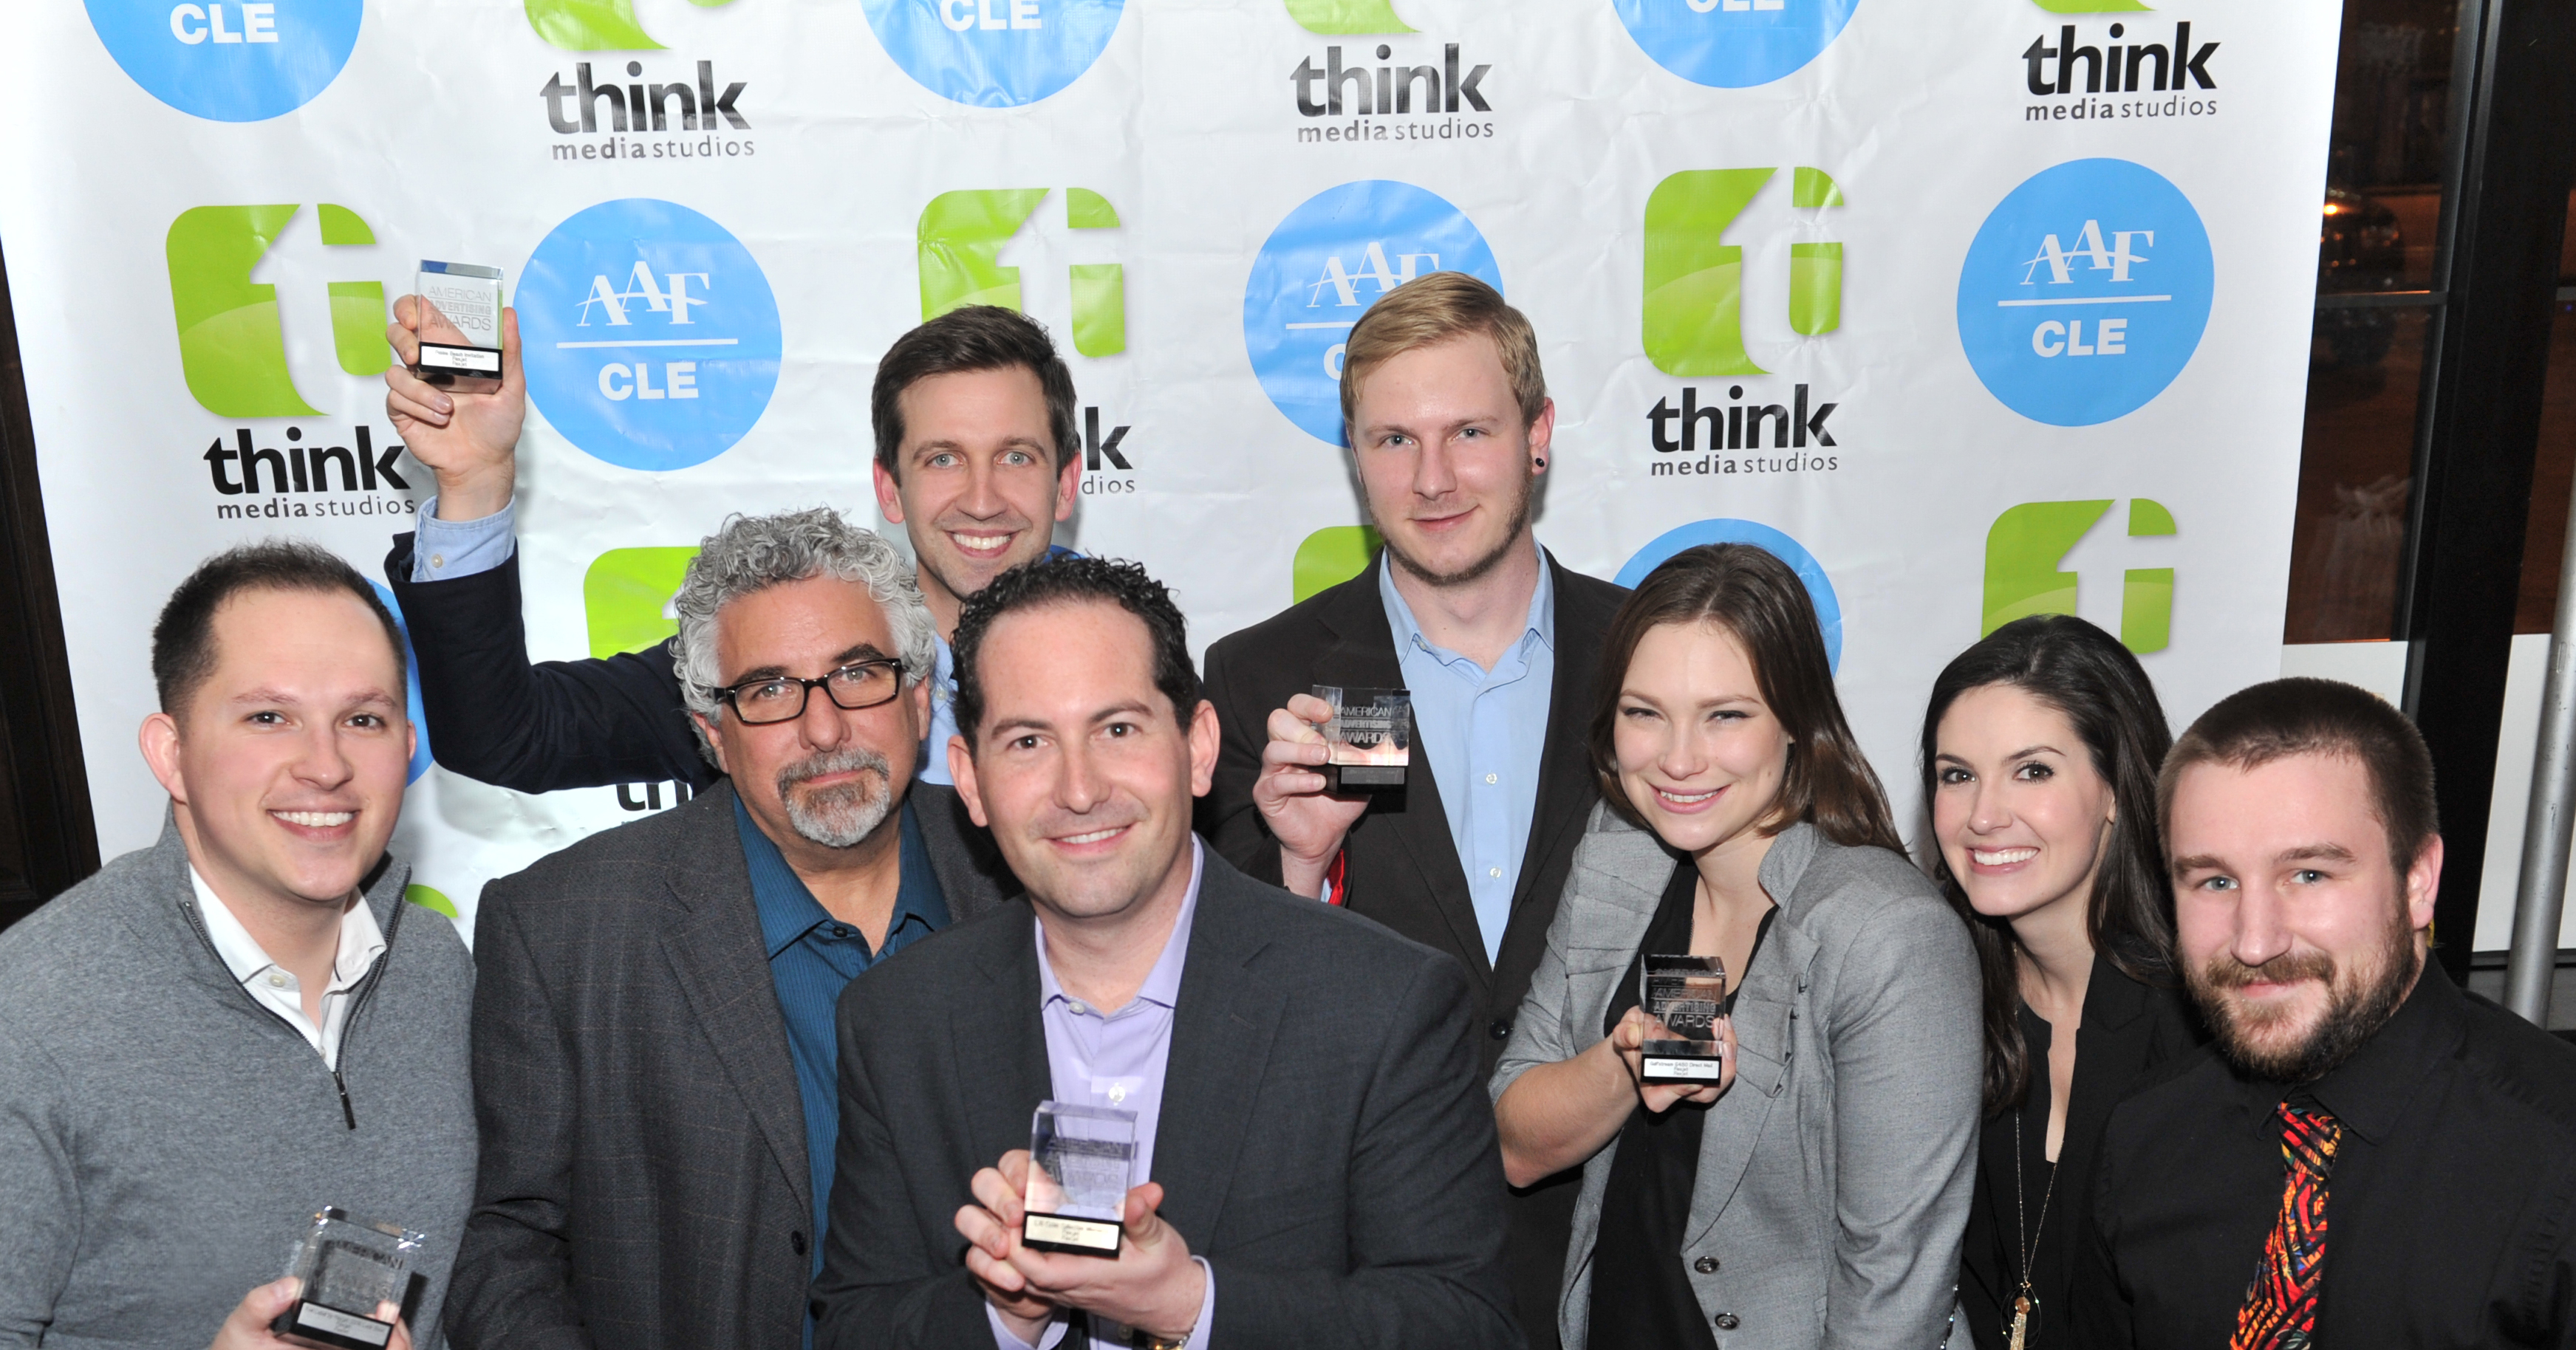 Flexjet's marketing team celebrates at the 2016-2017 American Advertising (ADDY) Awards held at the American Advertising Federation (AAF)-Cleveland annual Awards Show, after being honored with five ADDY awards for their outstanding work in 2016. Front, from left: Ryan Gushue, Tom Goddard, Jonathan Levey, Aveanna Salicce, Ashley Landreneau, Chris Steuer. Back, from left: Joel Milani, Justin Gibson. (Photo: Business Wire)